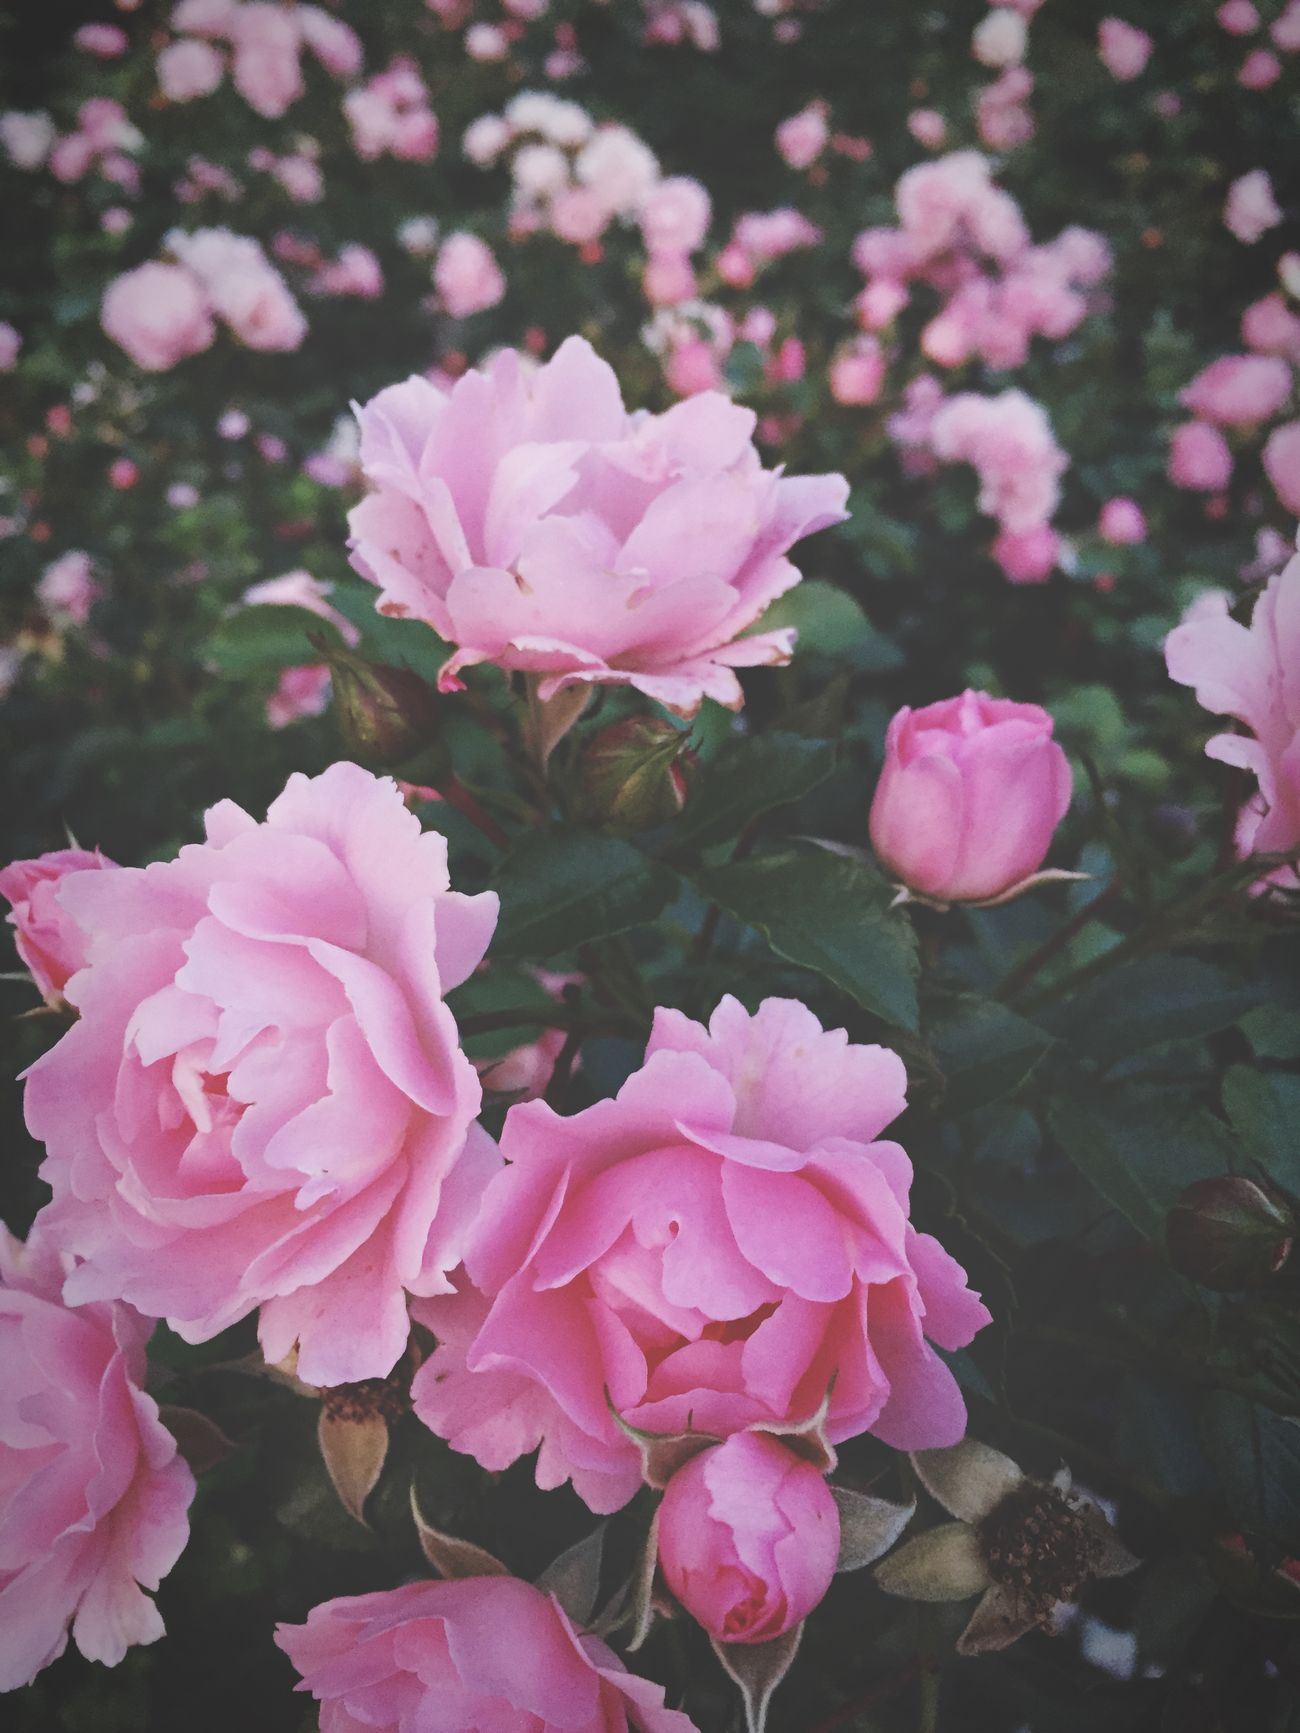 Flowers,Plants & Garden Flowers Pink Roses EyeEm Nature Lover Nature_collection IPhoneography